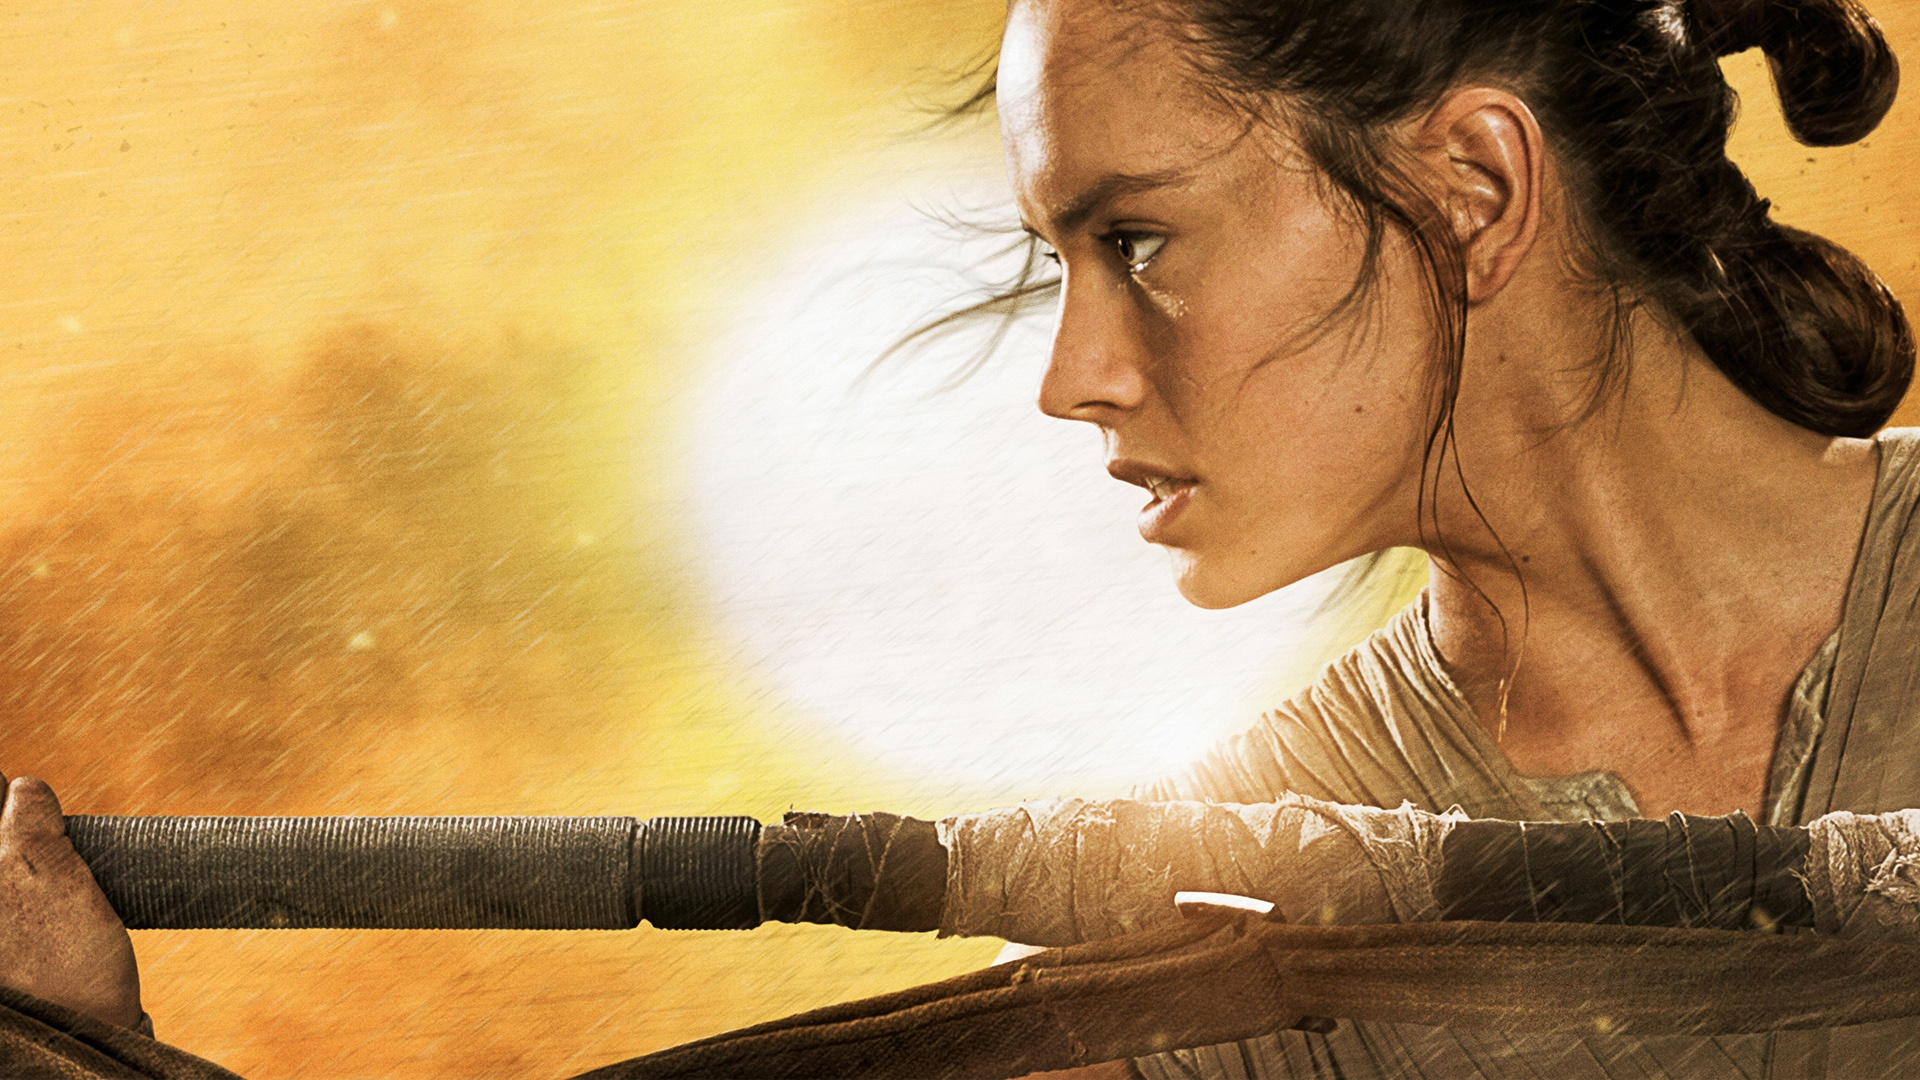 Star Wars The Force Awakens Rey Wallpapers HD Wallpapers 1920x1080